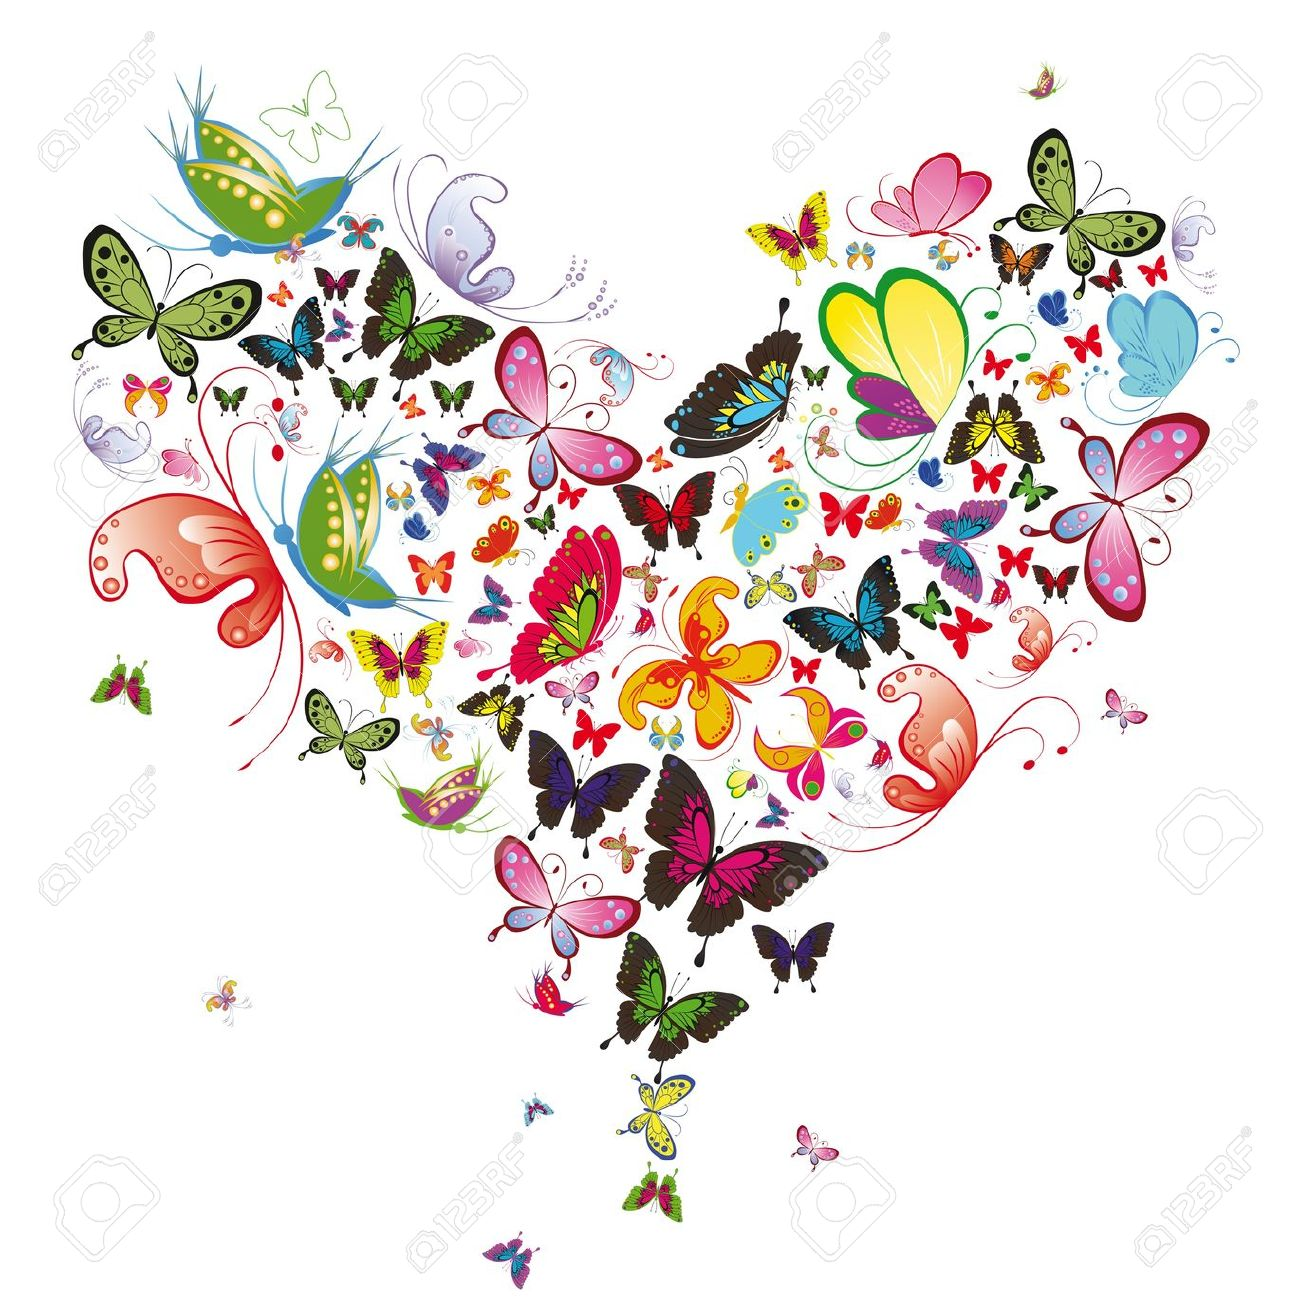 Free butterfly hearts clipart clip art freeuse download Free butterfly hearts clipart - ClipartFest clip art freeuse download